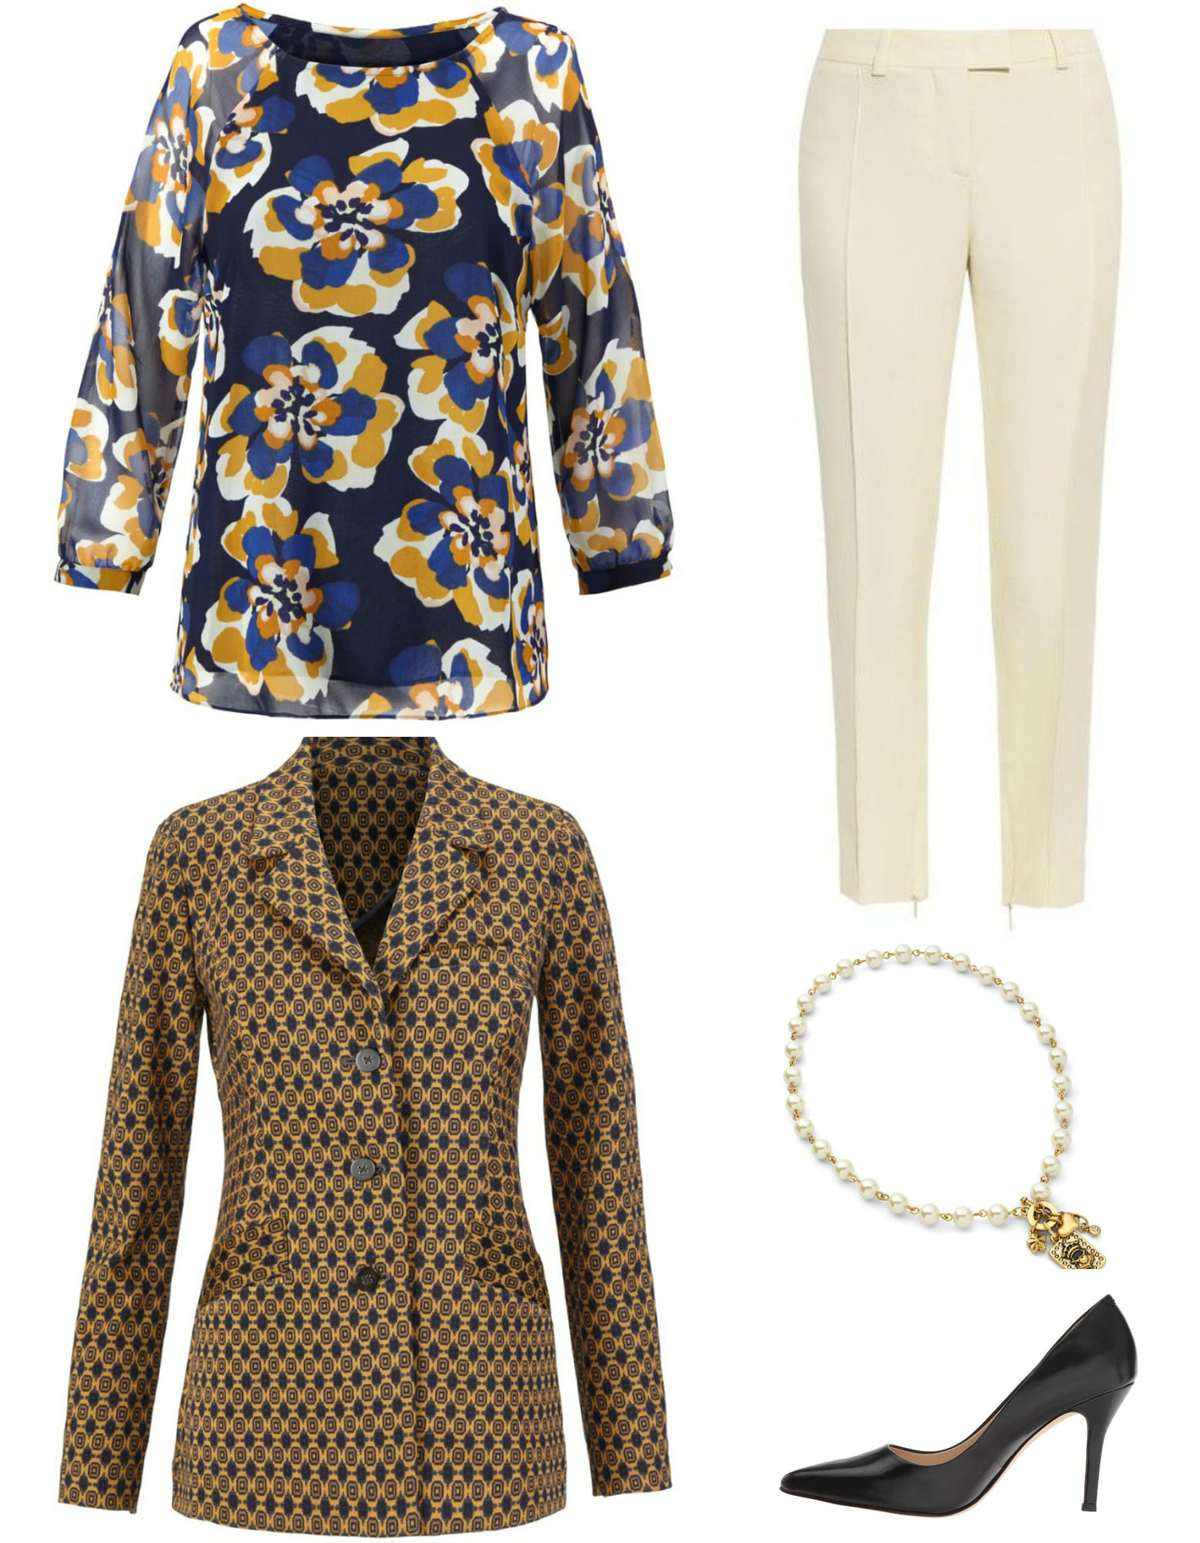 The cabi Lydia blouse styled for the office, paired with the cabi Standout Jacket, ivory ankle length trousers, cabi Heritage necklace and classic black pumps.